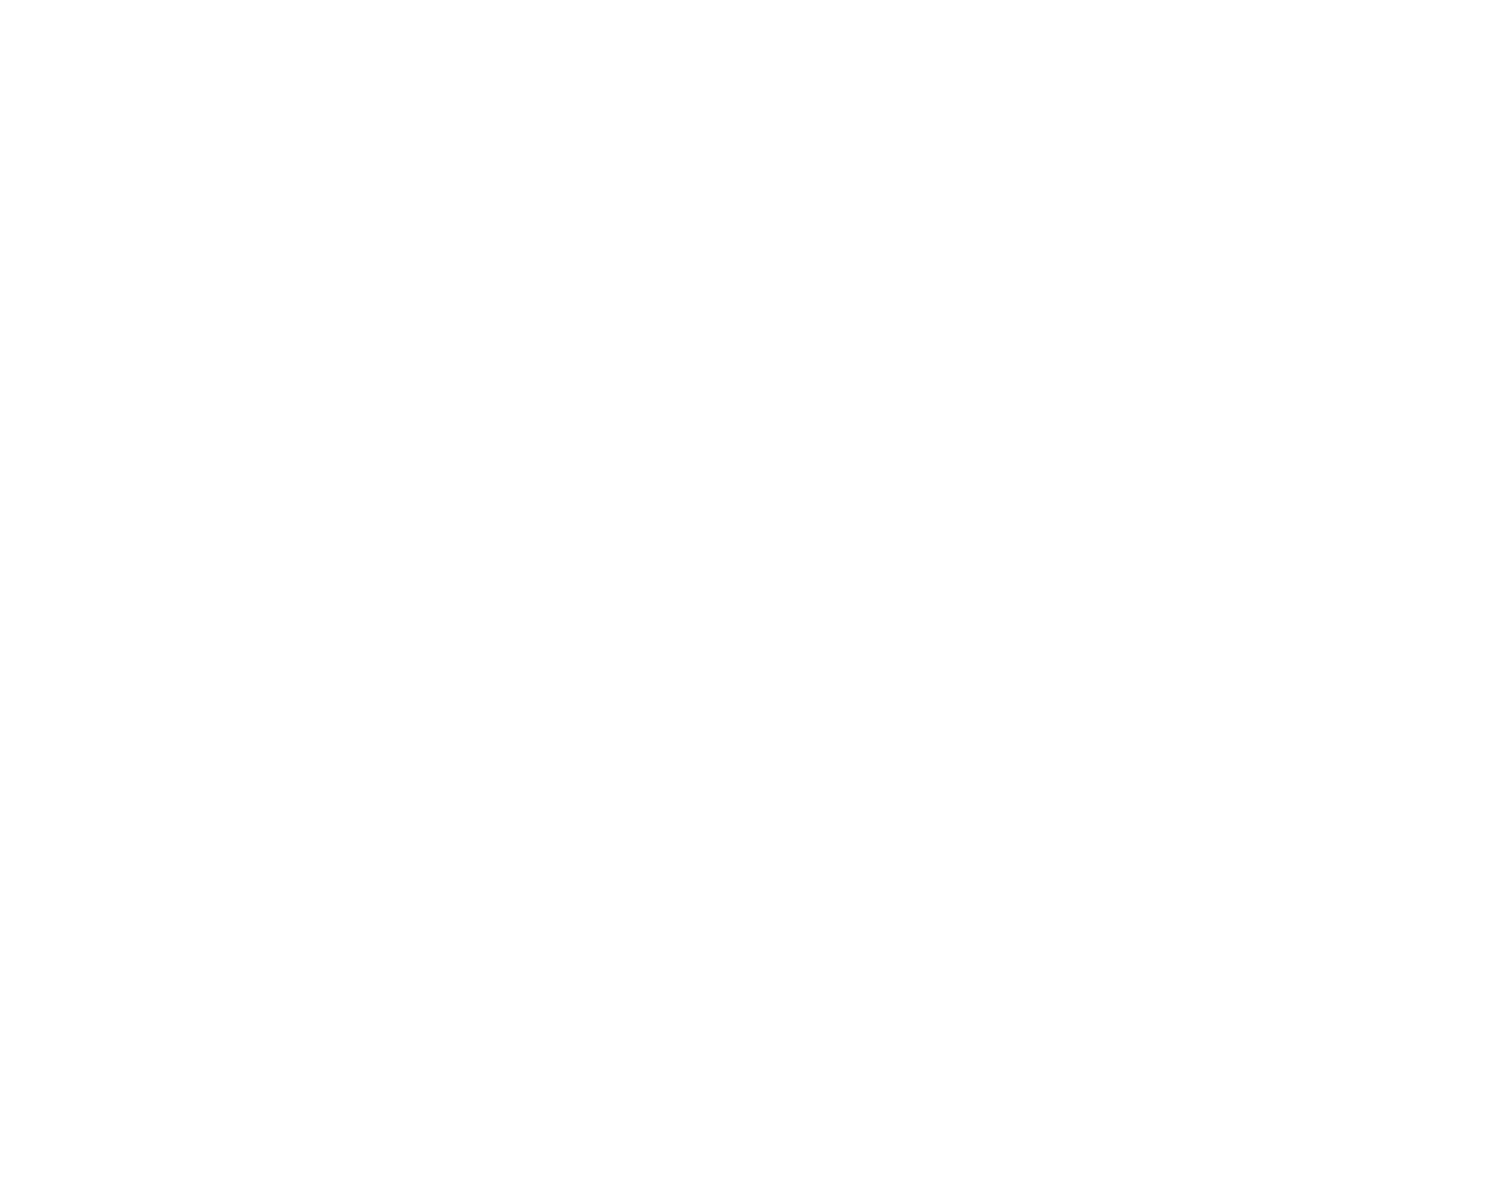 Damrep - The best things to do in Amsterdam (Recommended)